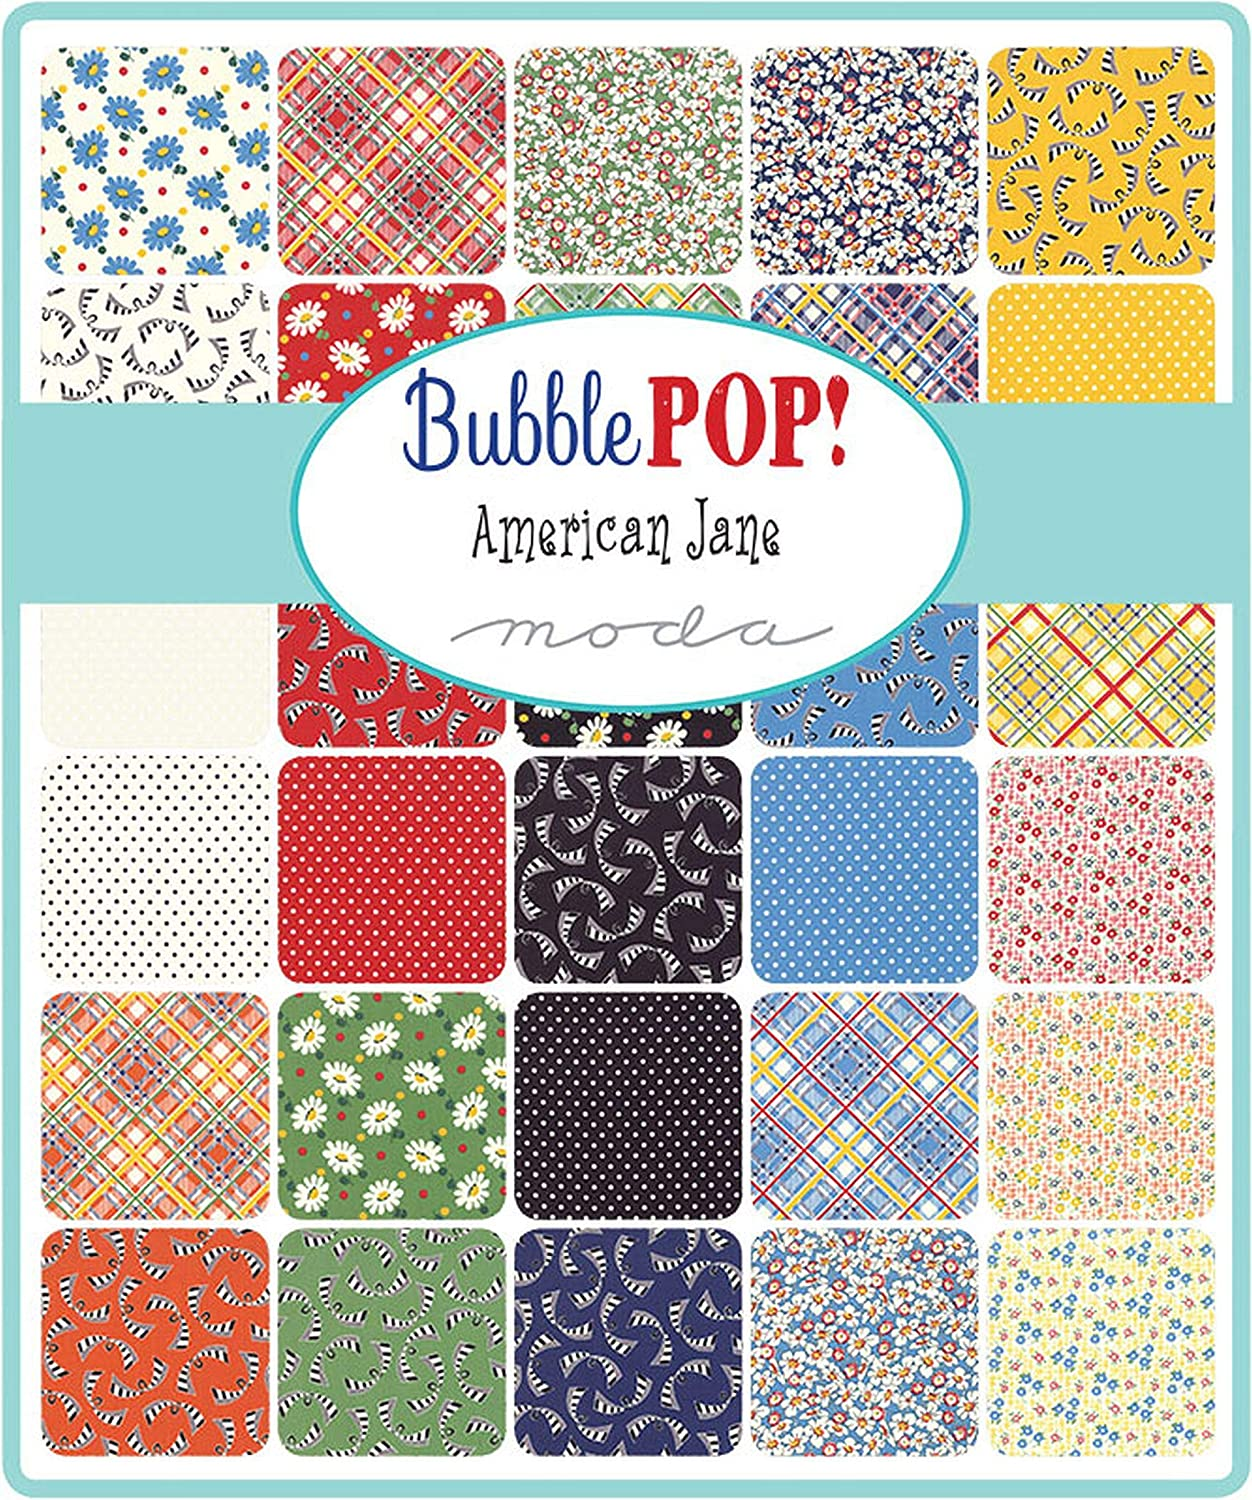 Bubble Pop Mini Charm Pack by American Jane; 42-2.5 Precut Fabric Quilt Squares